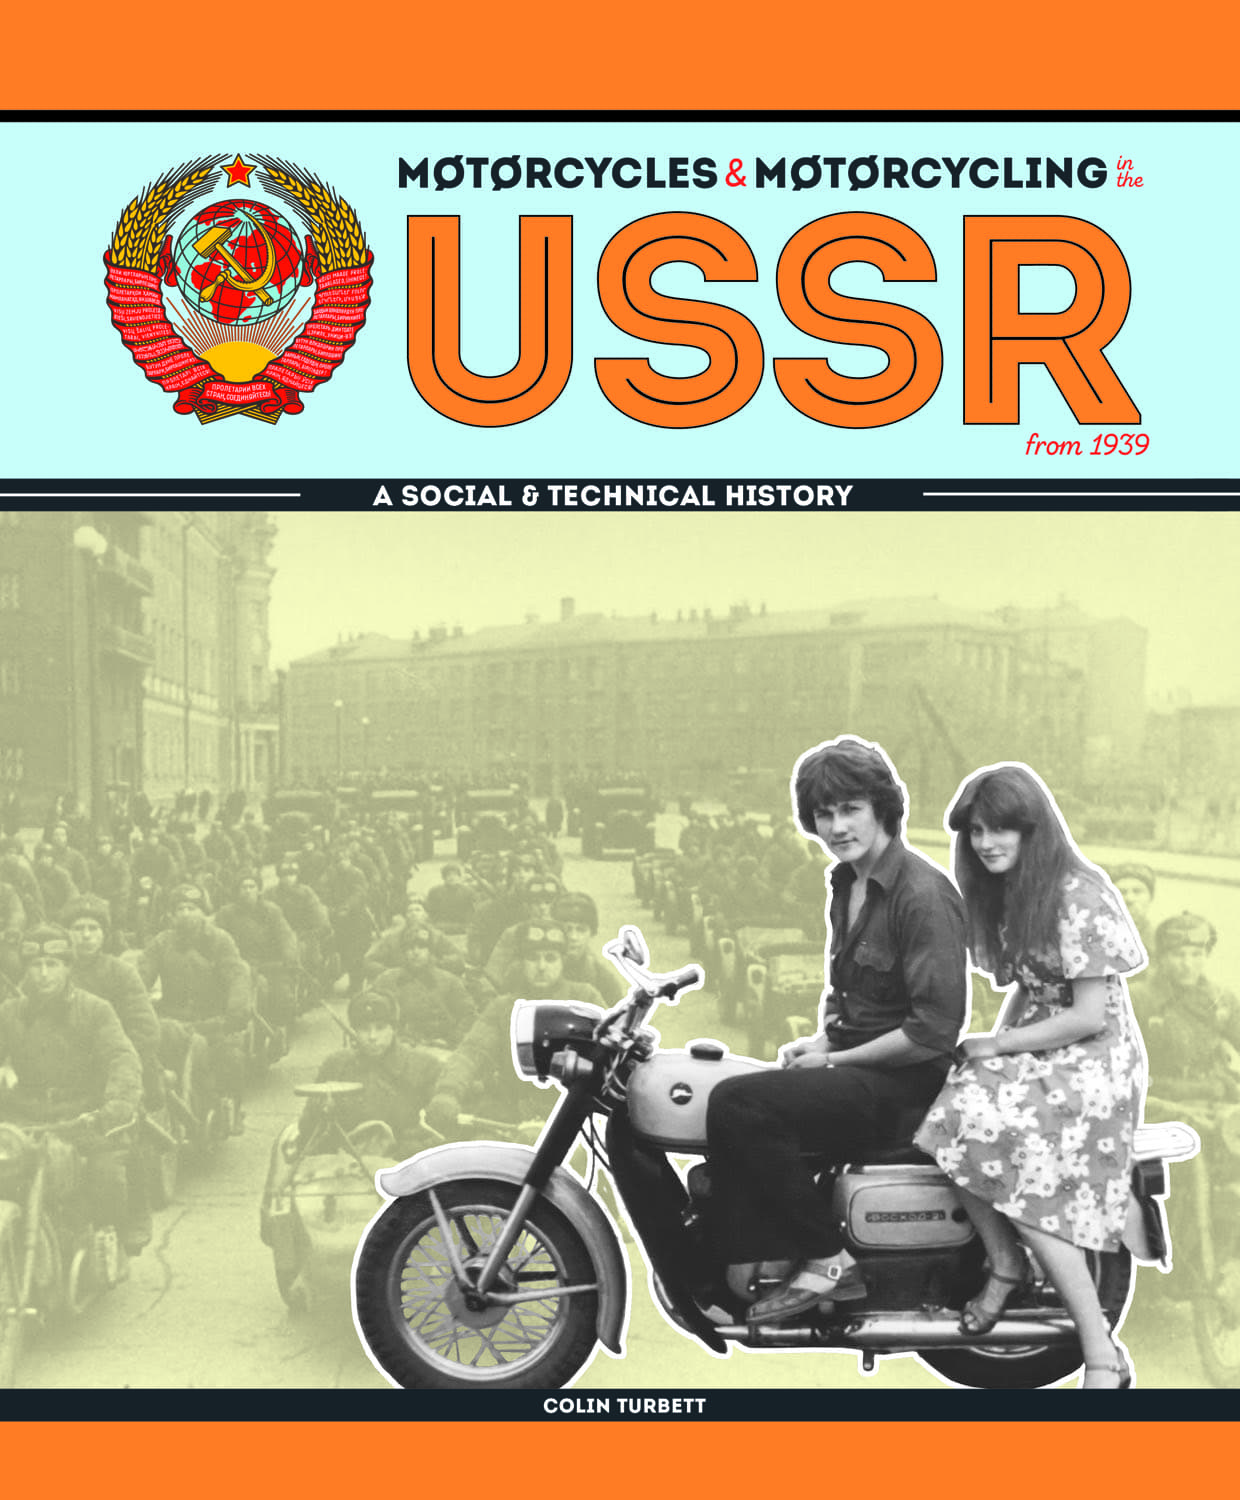 Motorcycles & Motorcycling in the USSR from 1939 cover